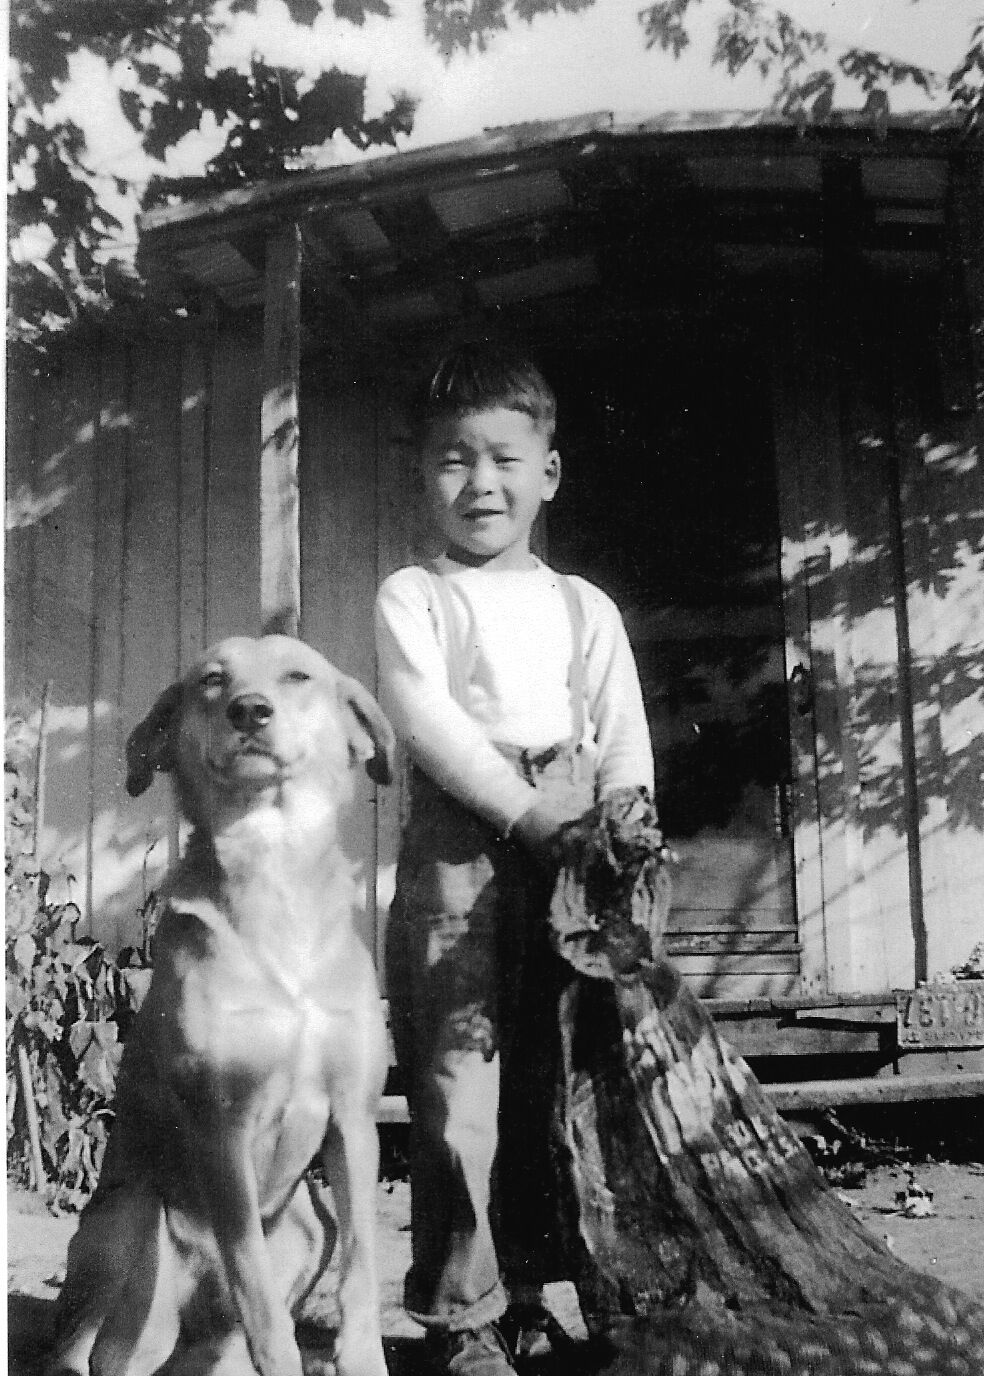 Rod Shingu and his dog. Scott, Arkansas circa 1950